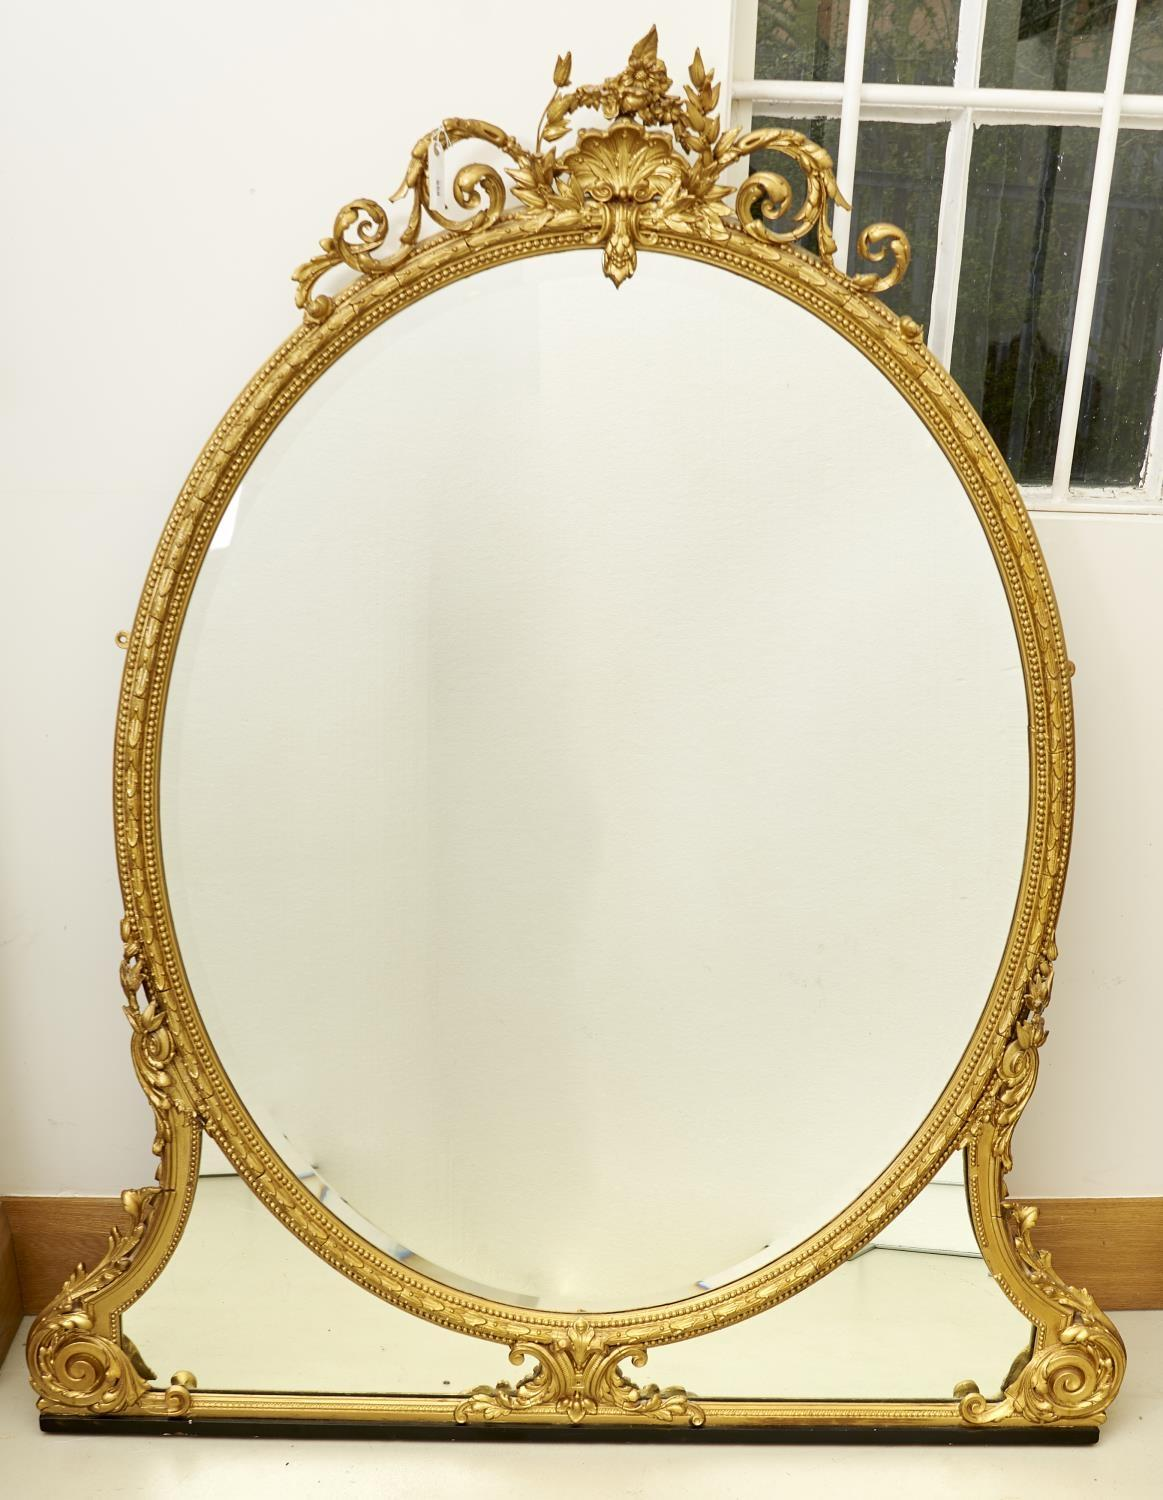 A VICTORIAN OVAL AND GILTWOOD COMPOSITION OVERMANTLE MIRROR, C1870, THE BEVELLED PLATE IN LAUREL AND